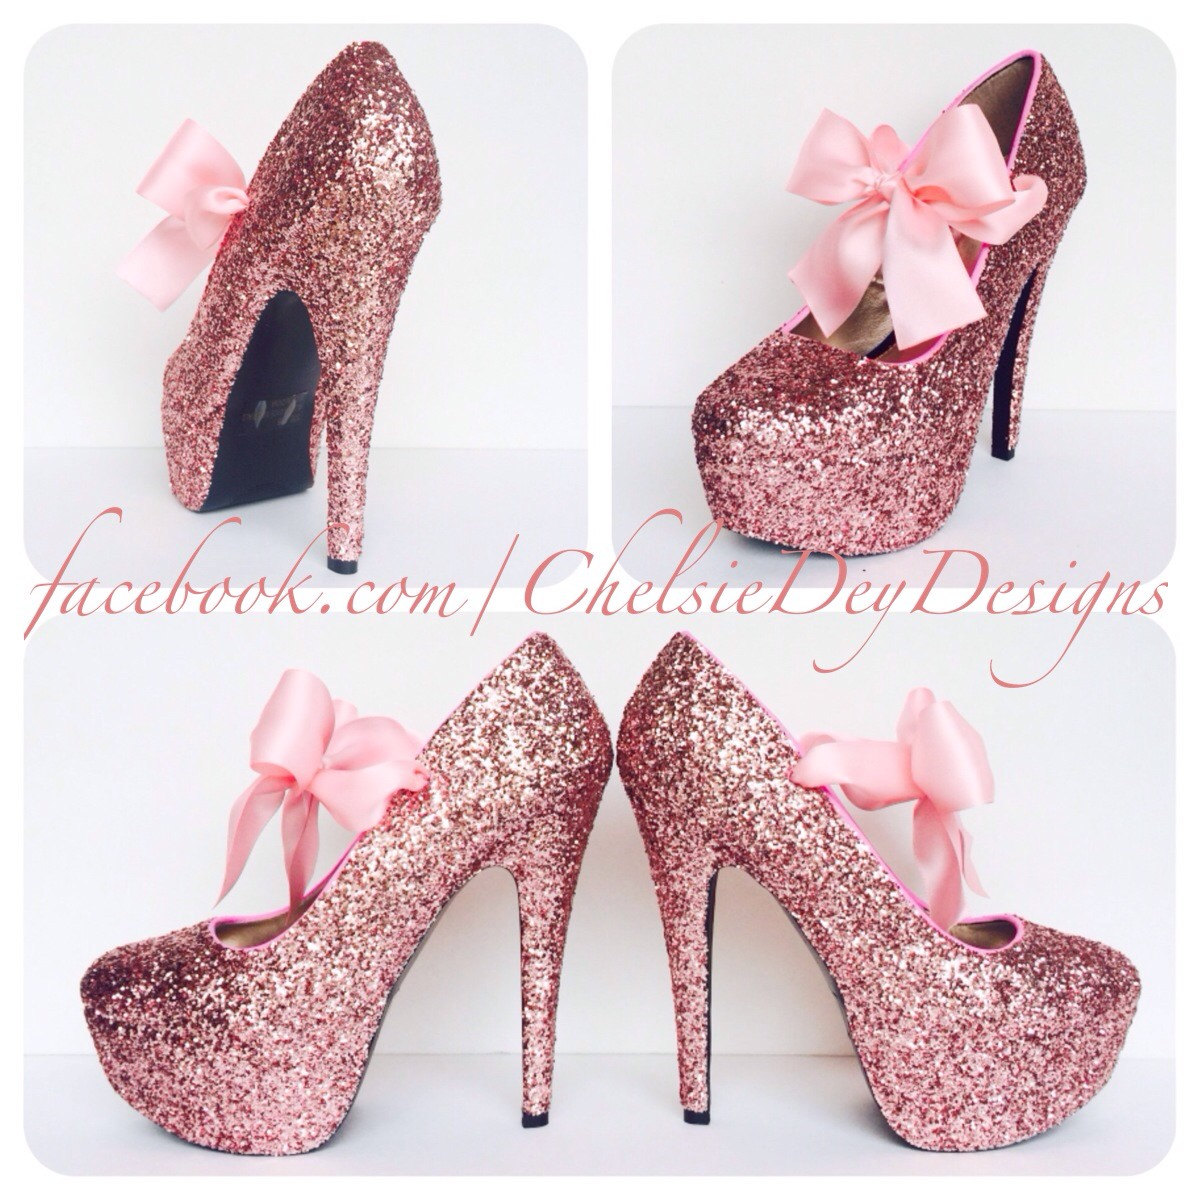 Glitzy Pumps Satin Pink Shoes Light Glitter High Heels Wedding Bubblegum Platform Bows I2HE9WDY